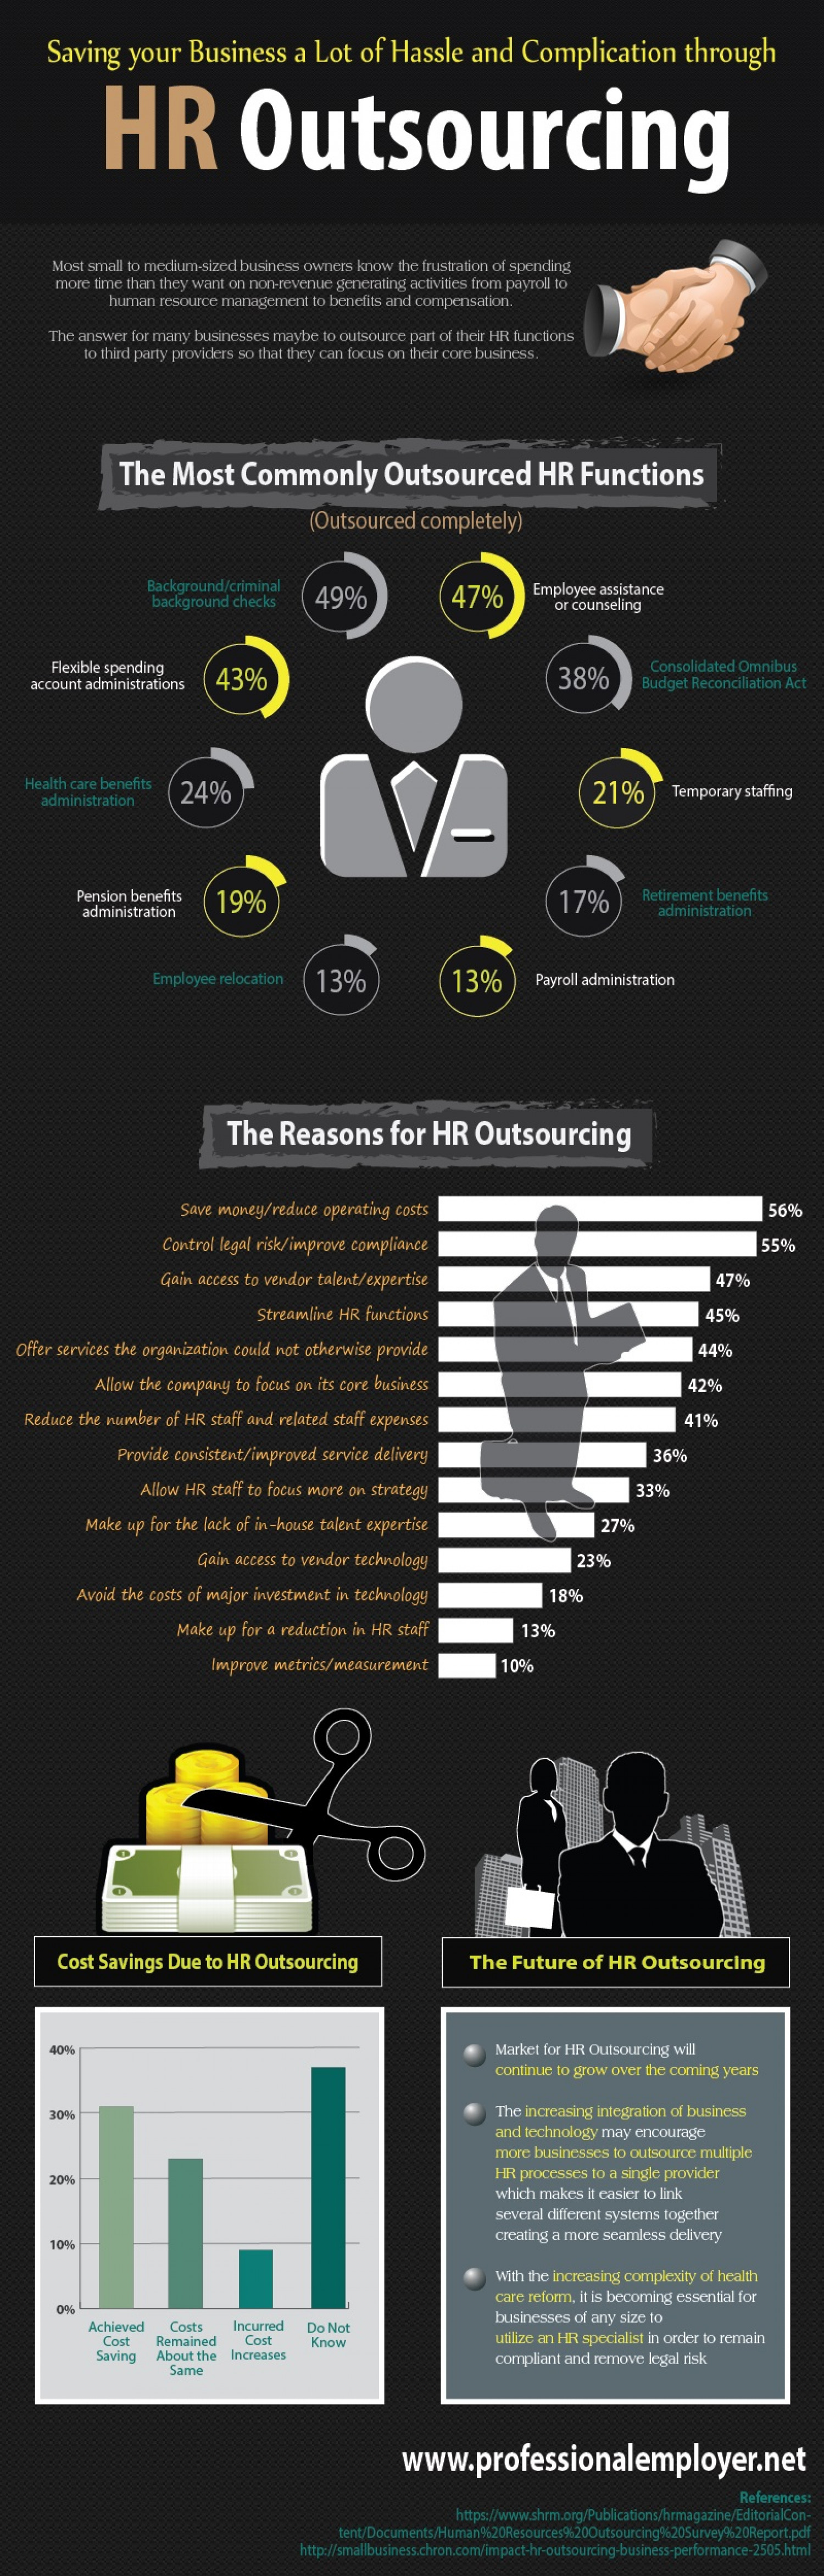 Saving Your Business a Lot of Hassle and Complication through HR Outsourcing Infographic